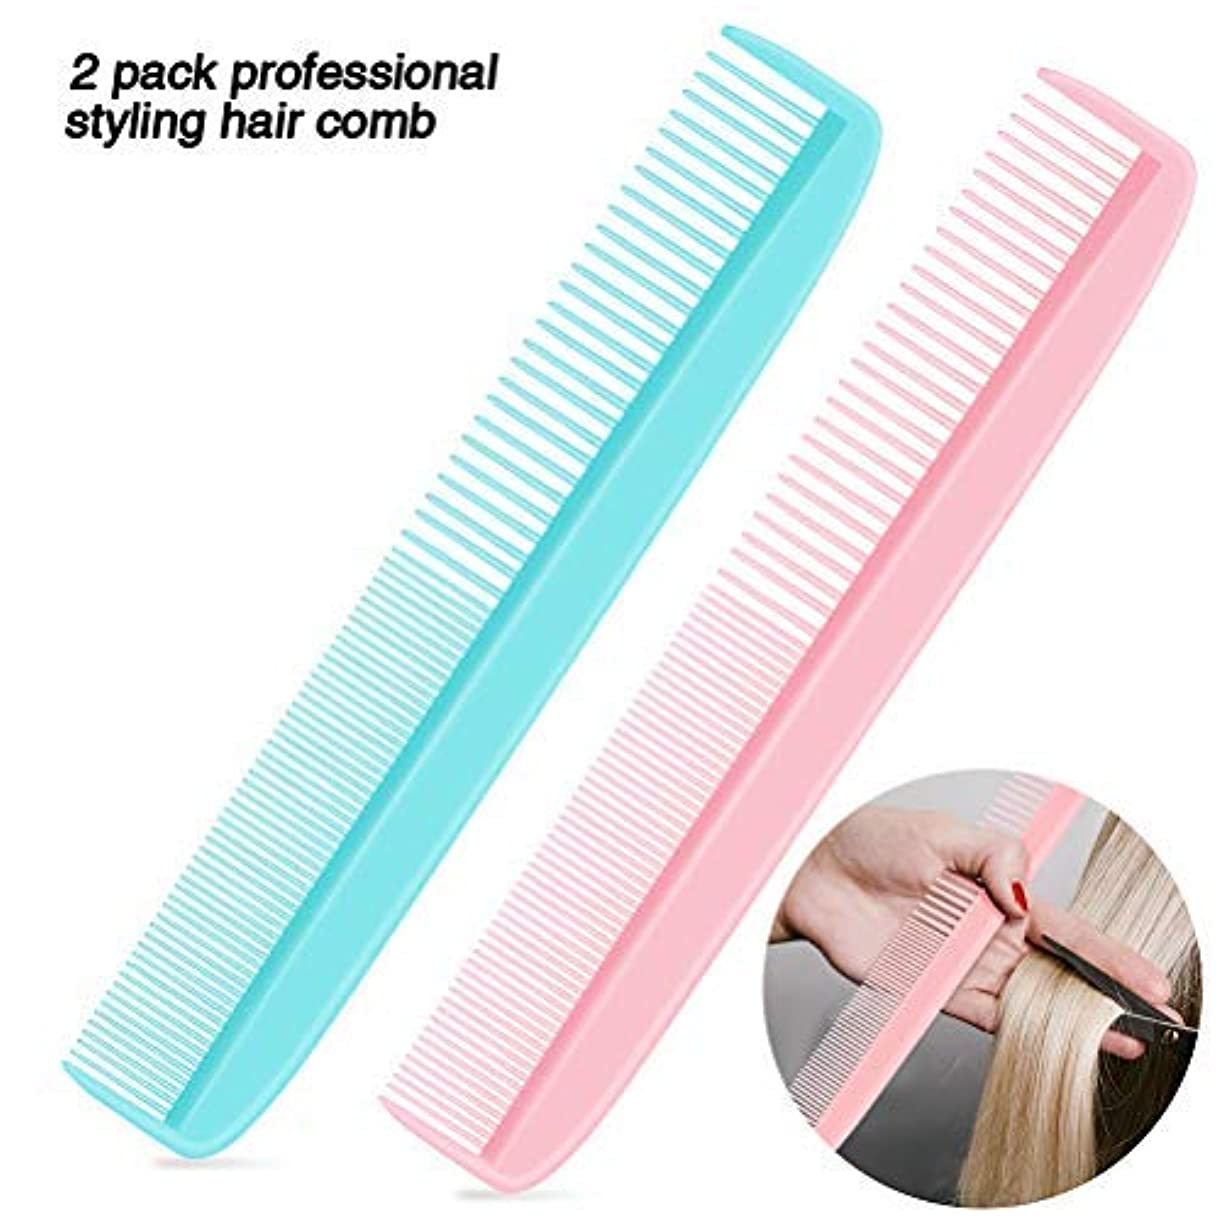 葡萄写真を描く葡萄2 Pack Anti-static Professional Styling Comb Hairdresser Barber Comb - 7 Inch Coarse/Fine Tooth Rake Comb [並行輸入品]